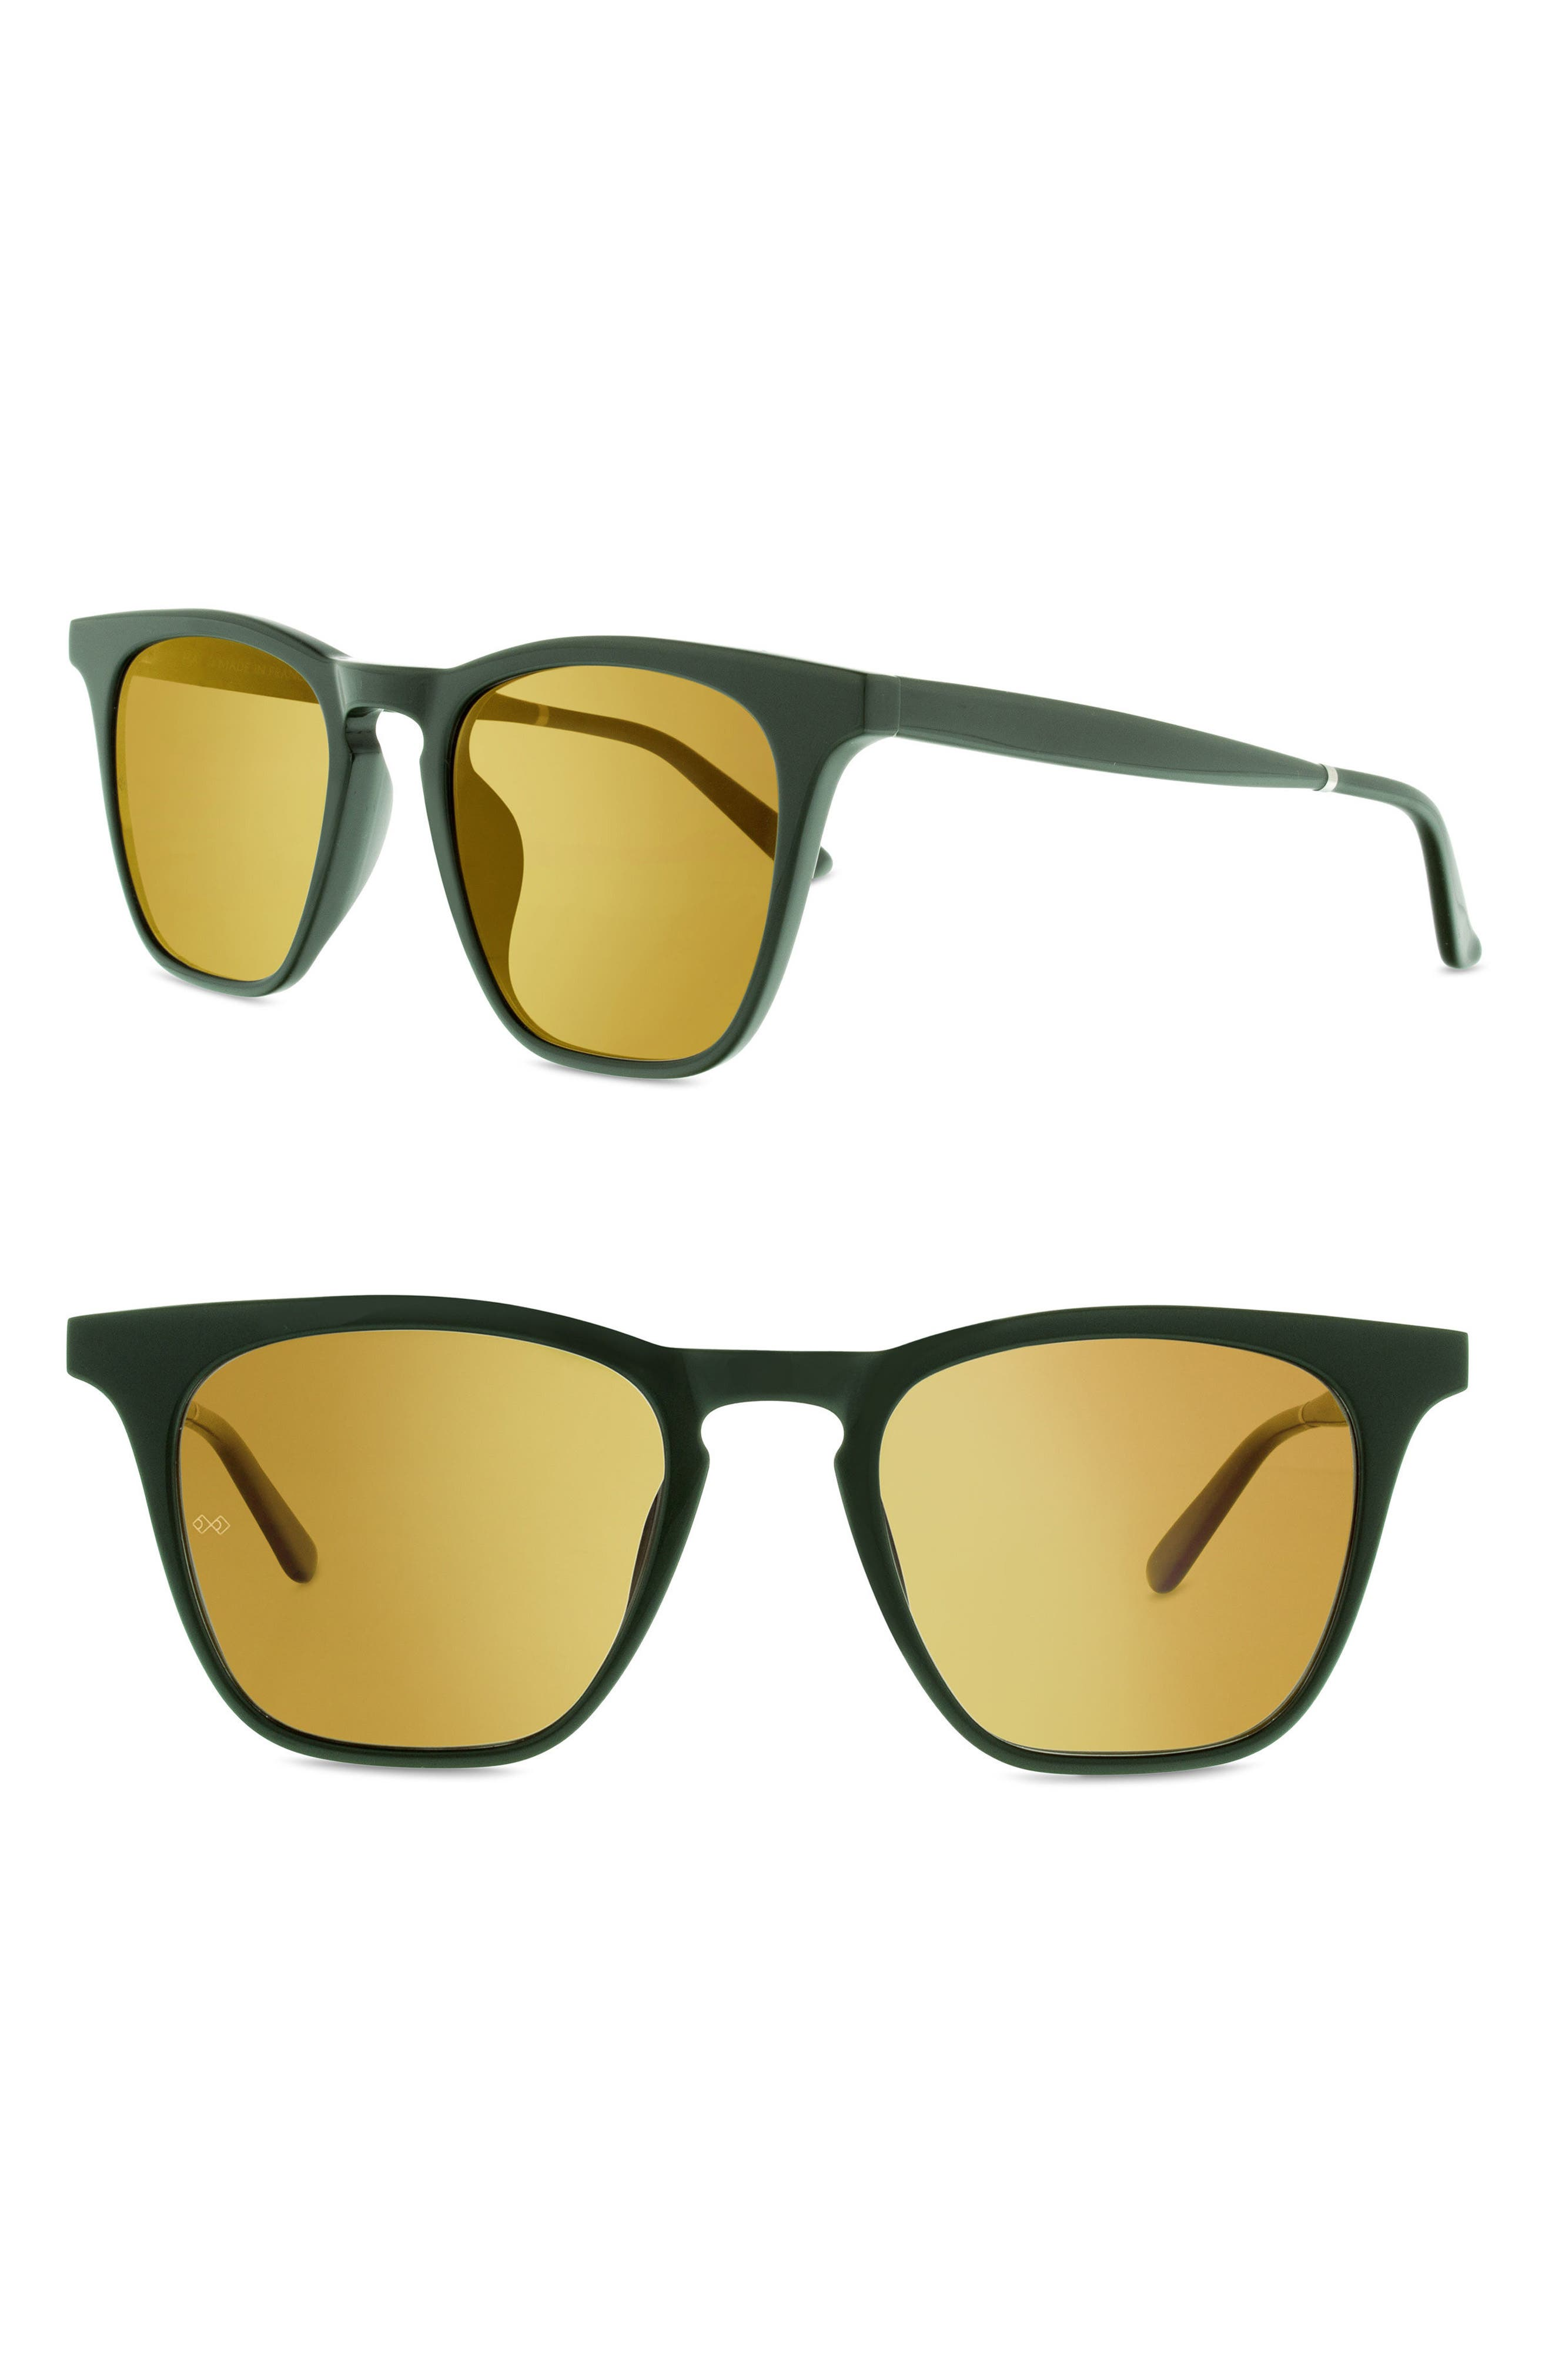 SMOKE X MIRRORS ROCKET 88 50MM SQUARE SUNGLASSES - GREEN/ GOLD MIRROR